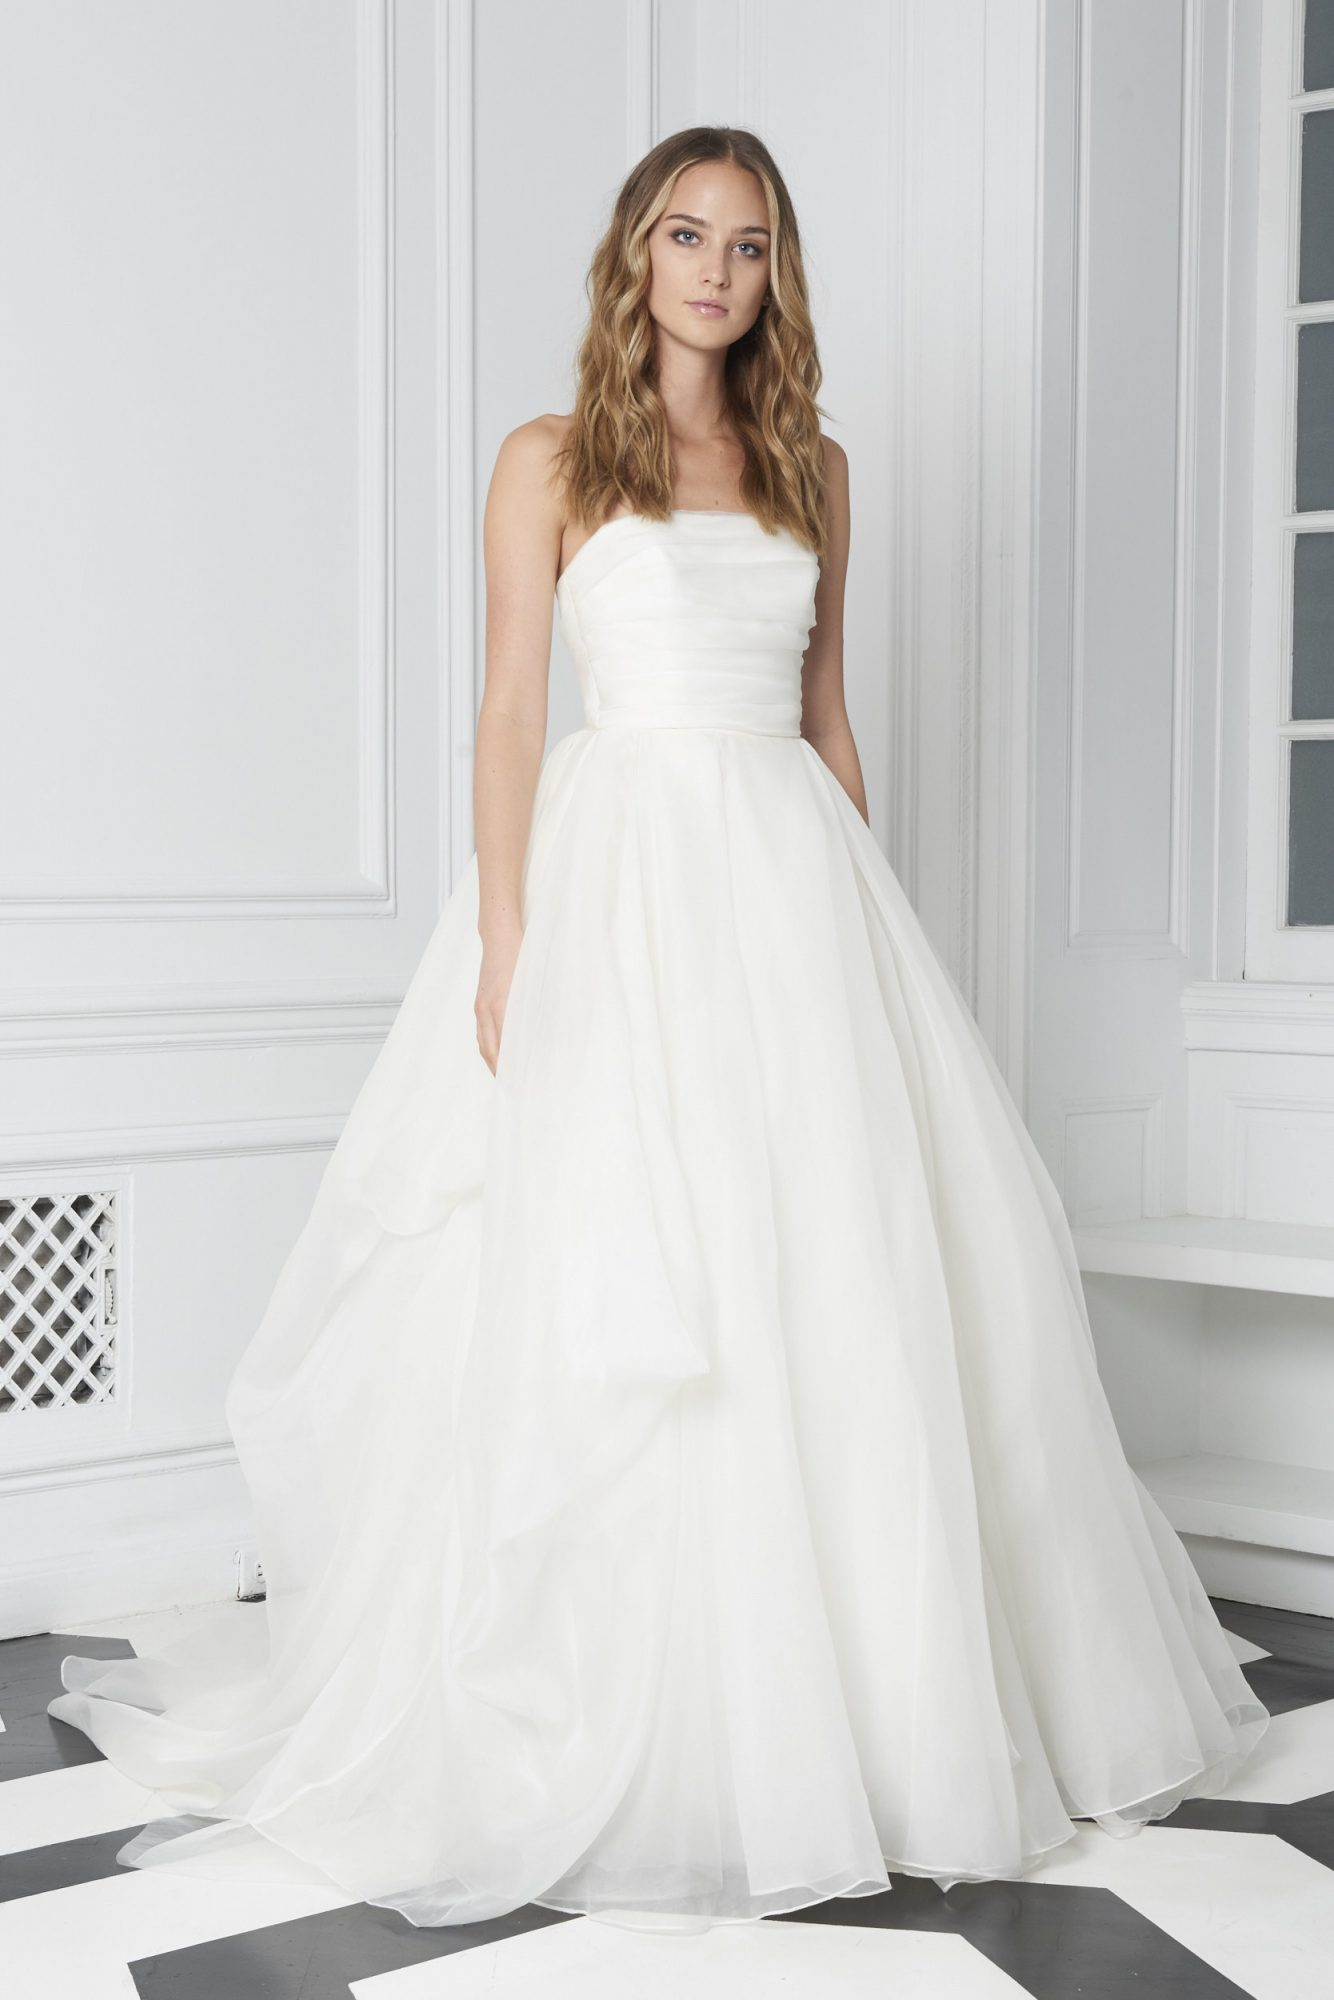 Monique Lhuillier Bliss Fall 2018 Strapless Ball Gown with Layered bodice